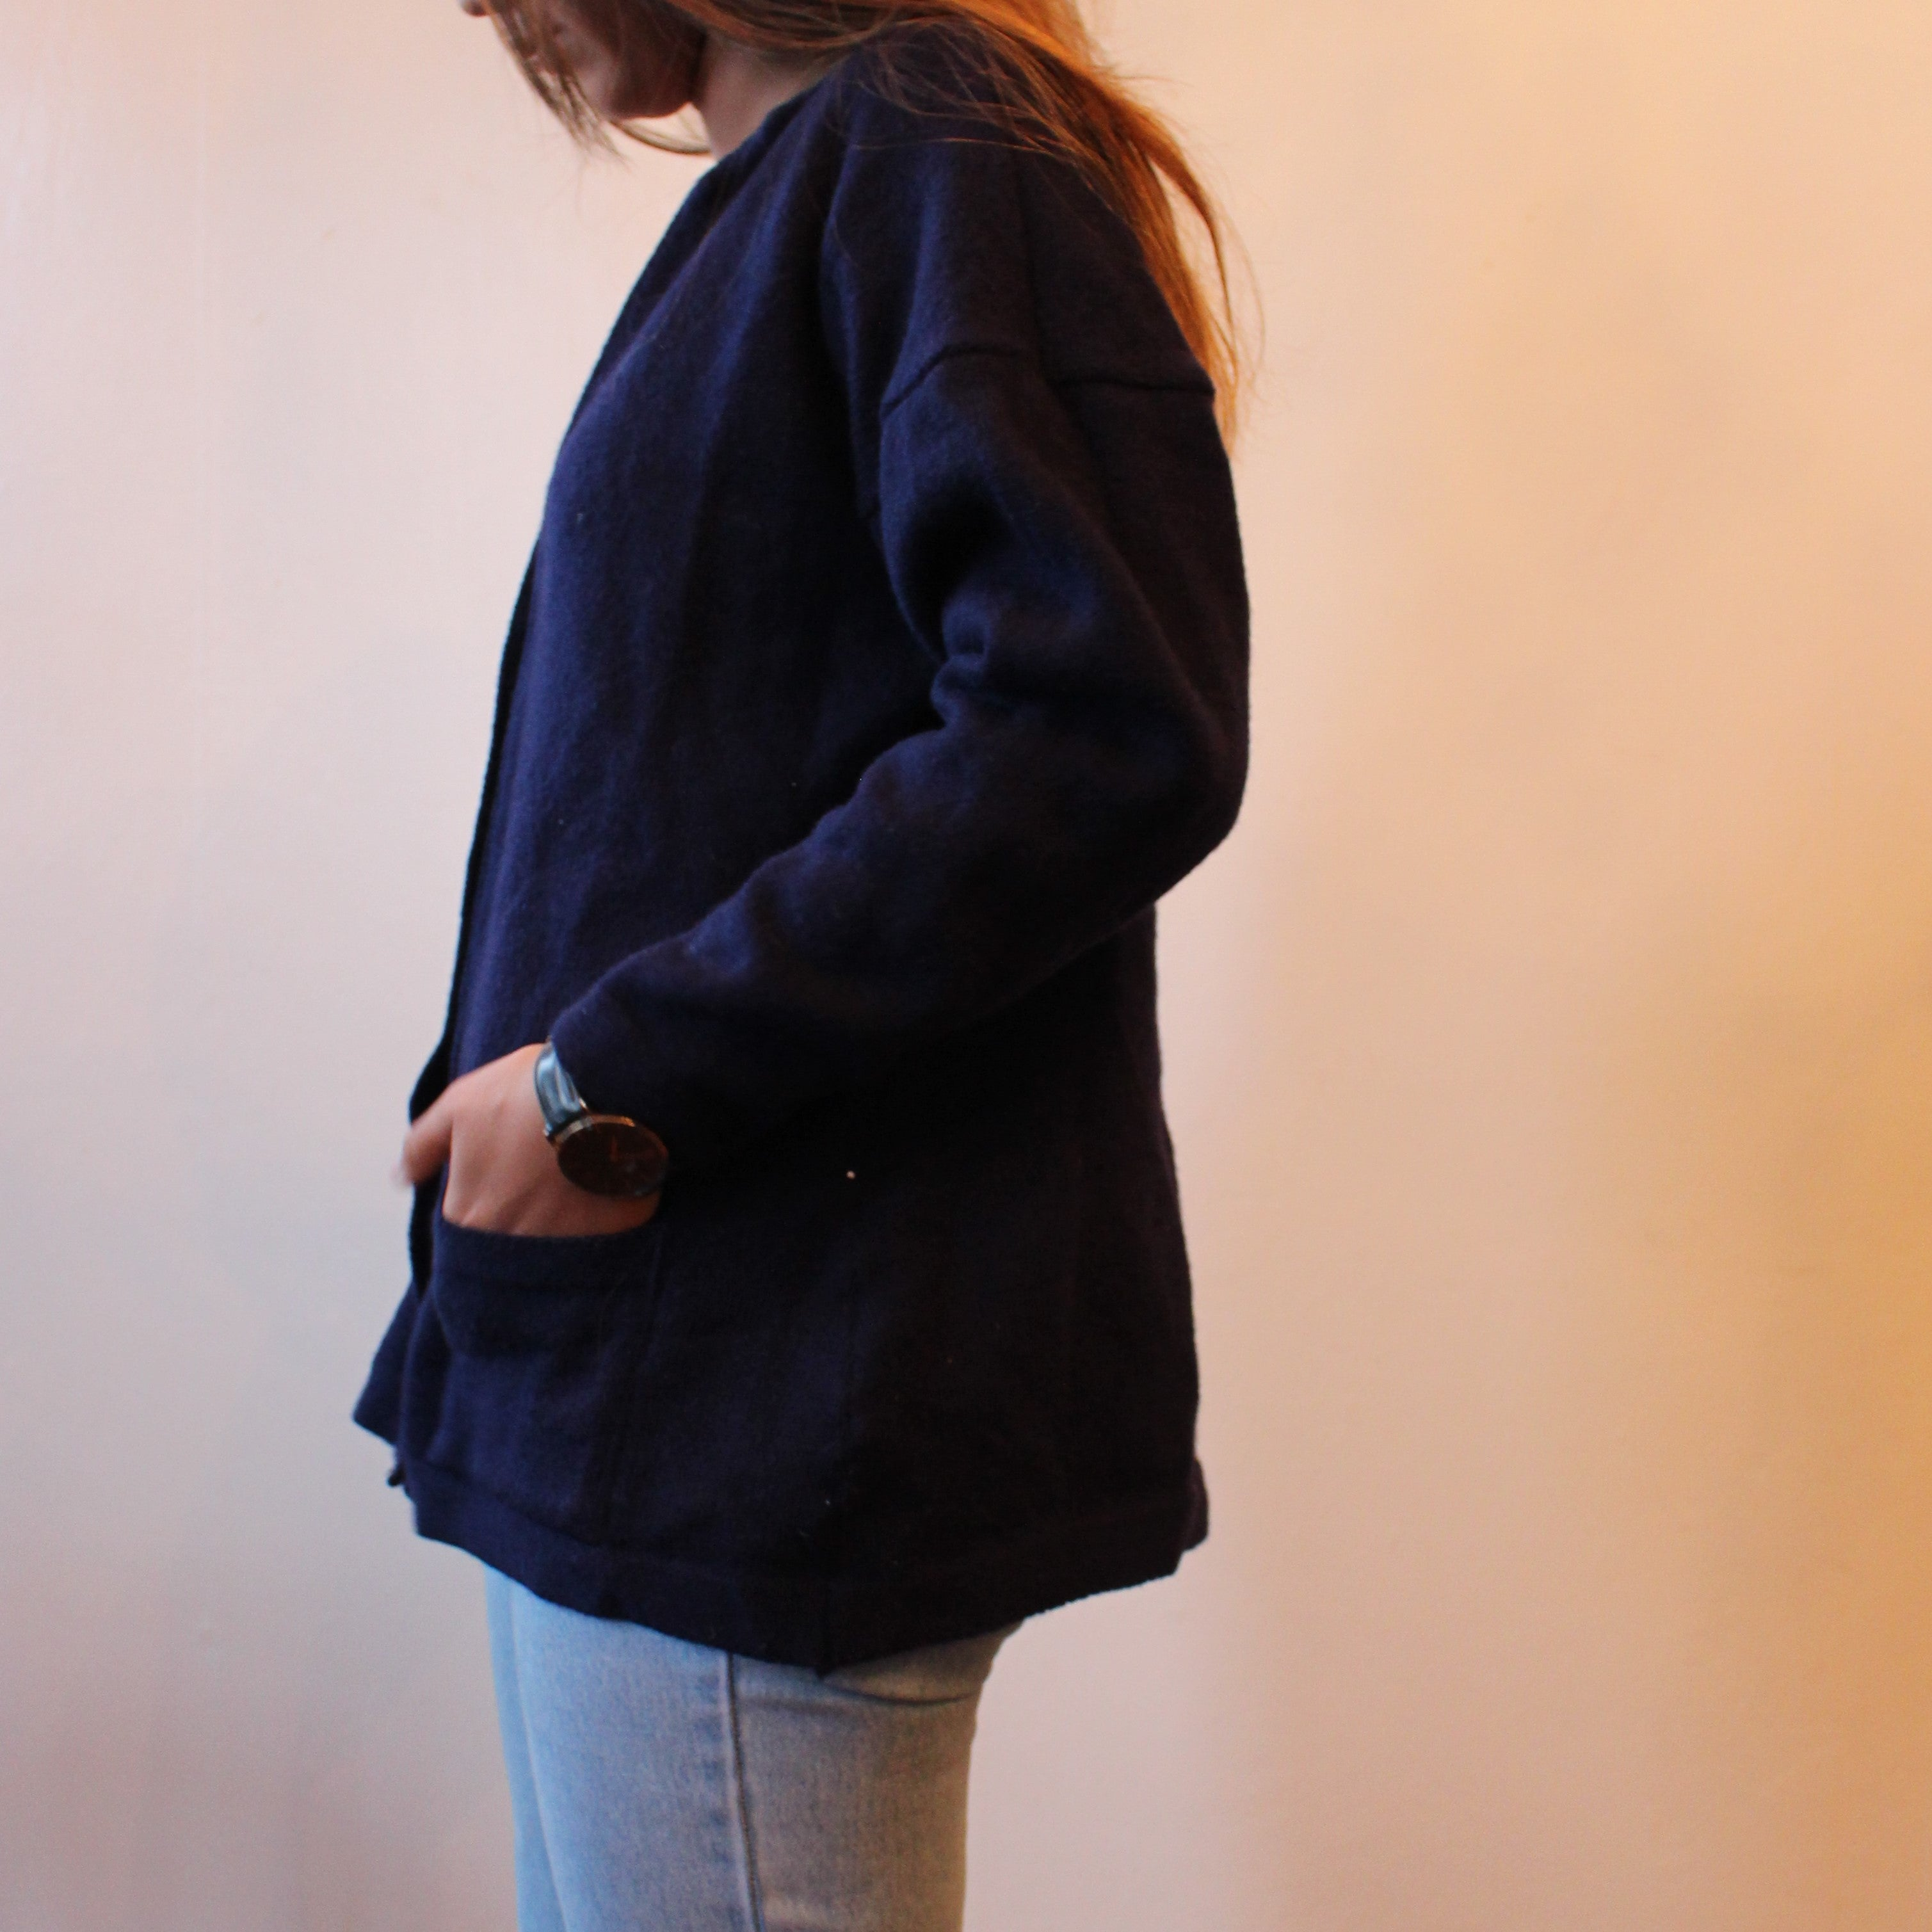 Navy Number Cardigan - ZoMa Collective